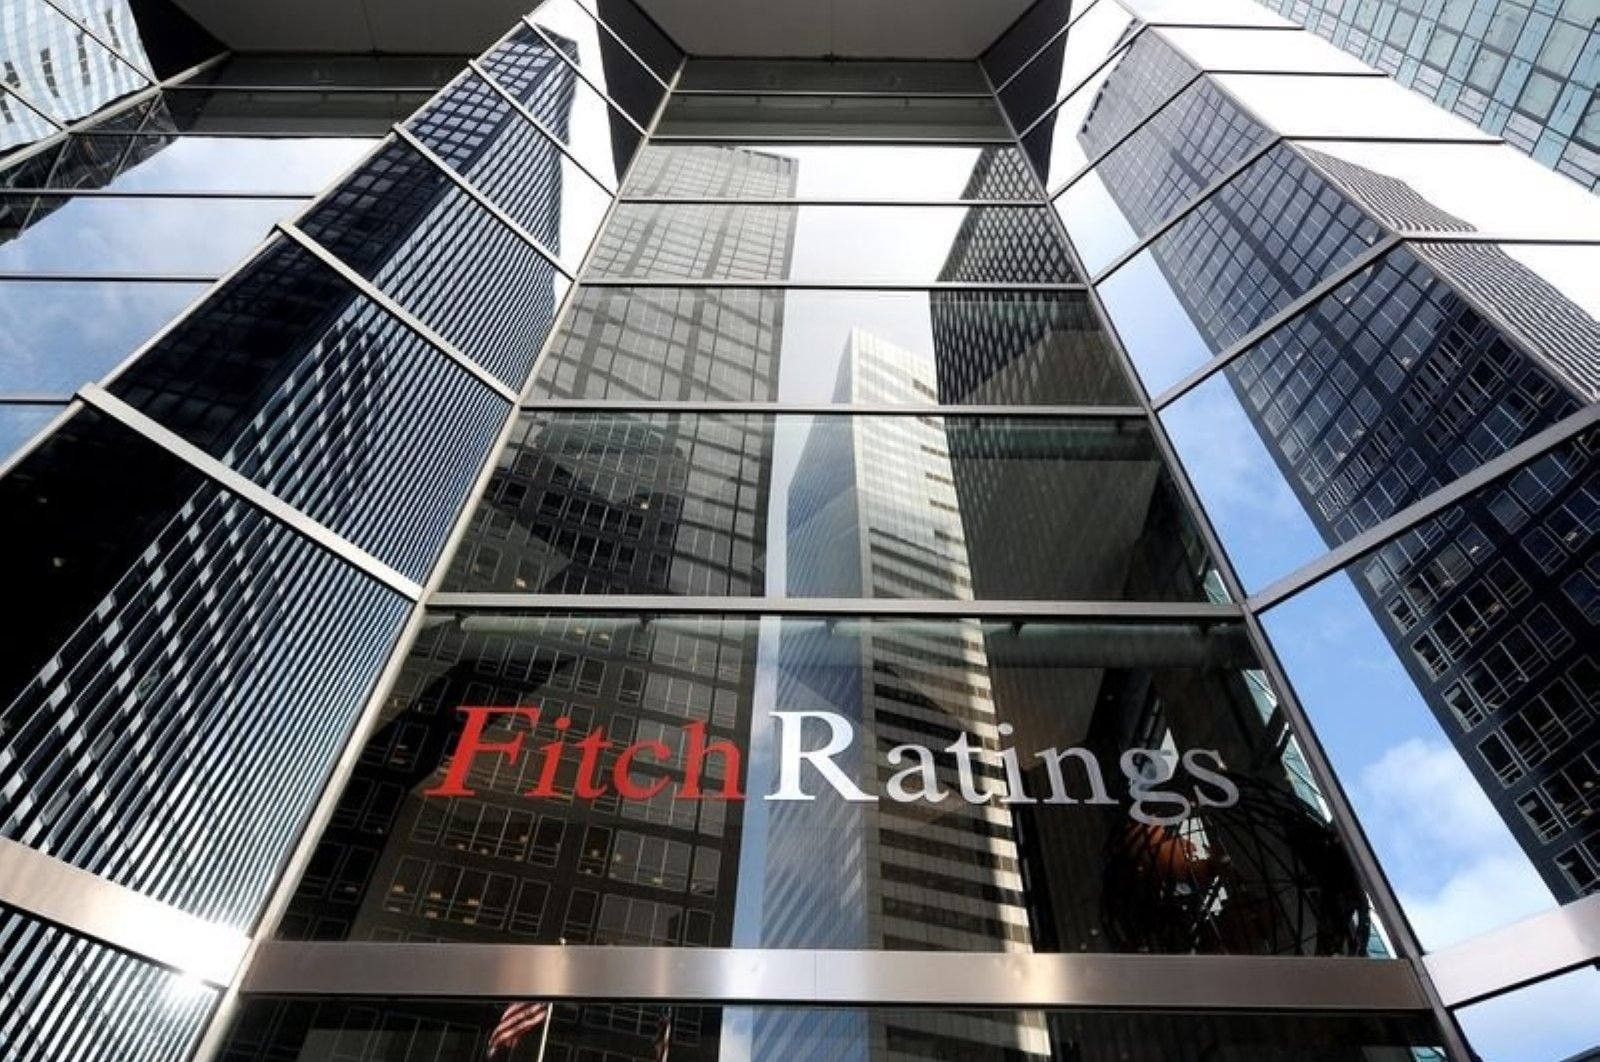 The building of Fitch Ratings in New York City, New York, U.S., Dec. 8, 2011. (EPA Photo)